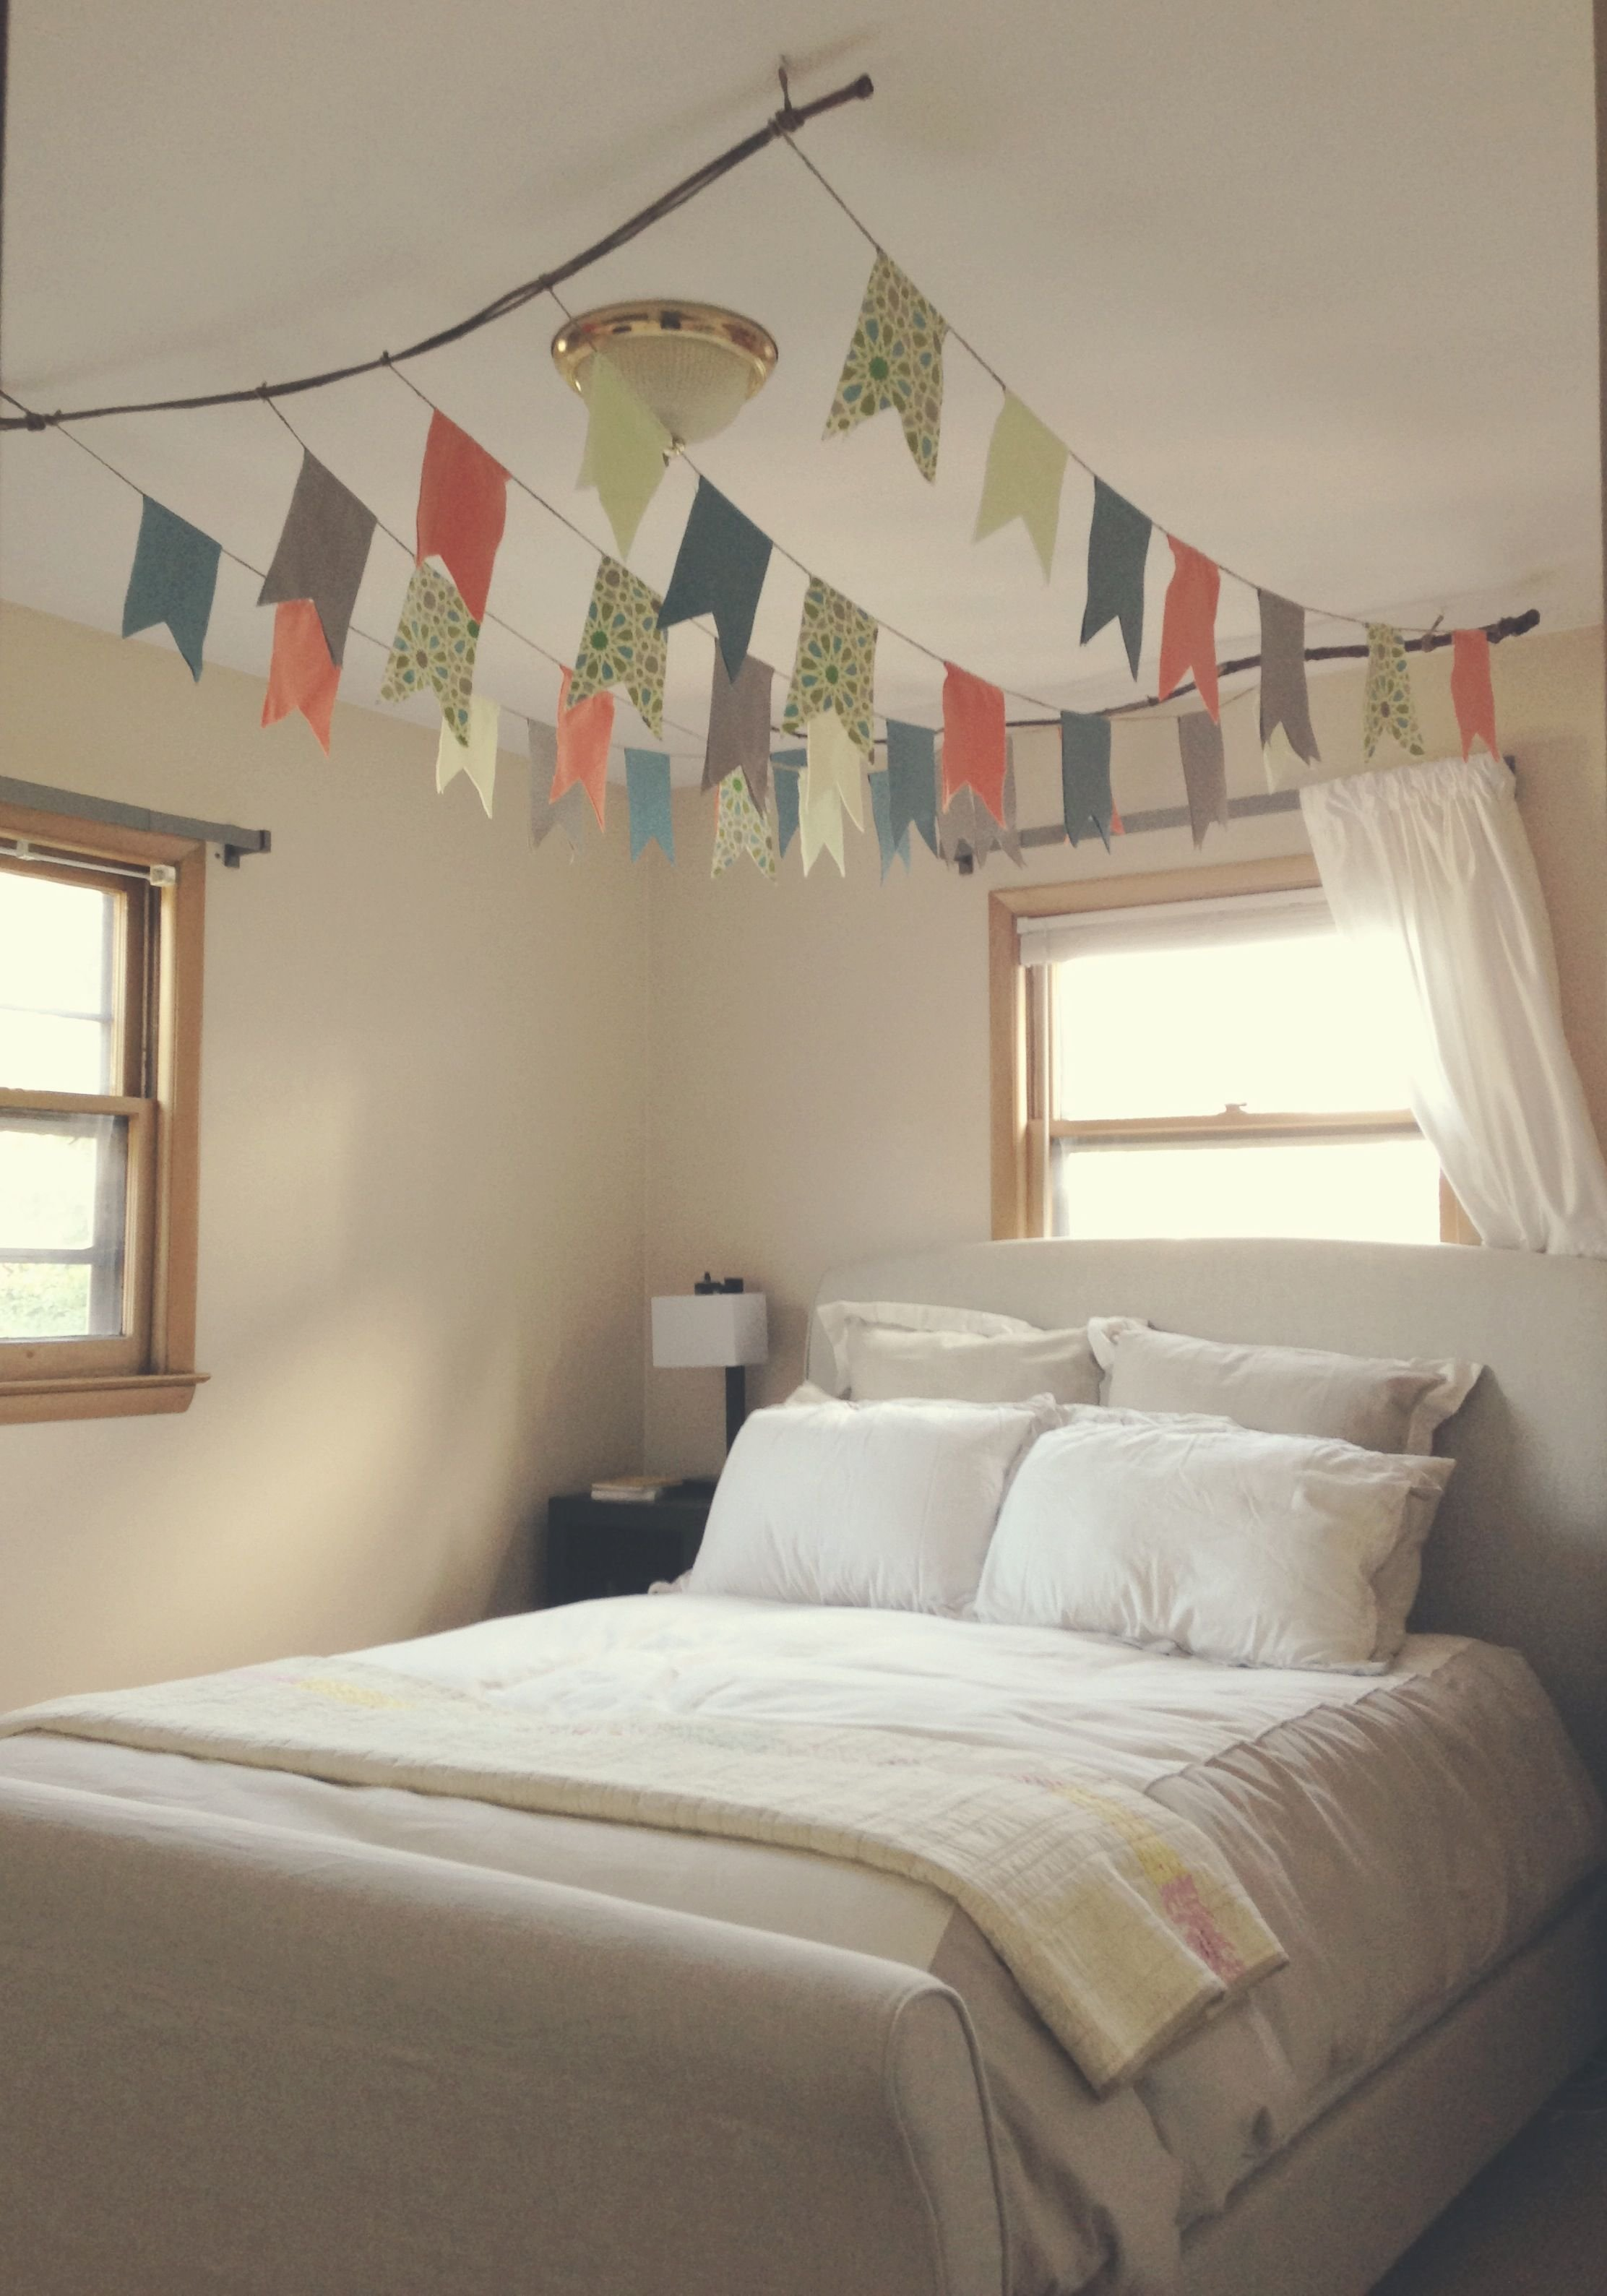 Best Diy Flag Canopy Over Bed Use Branches To Hang From The With Pictures